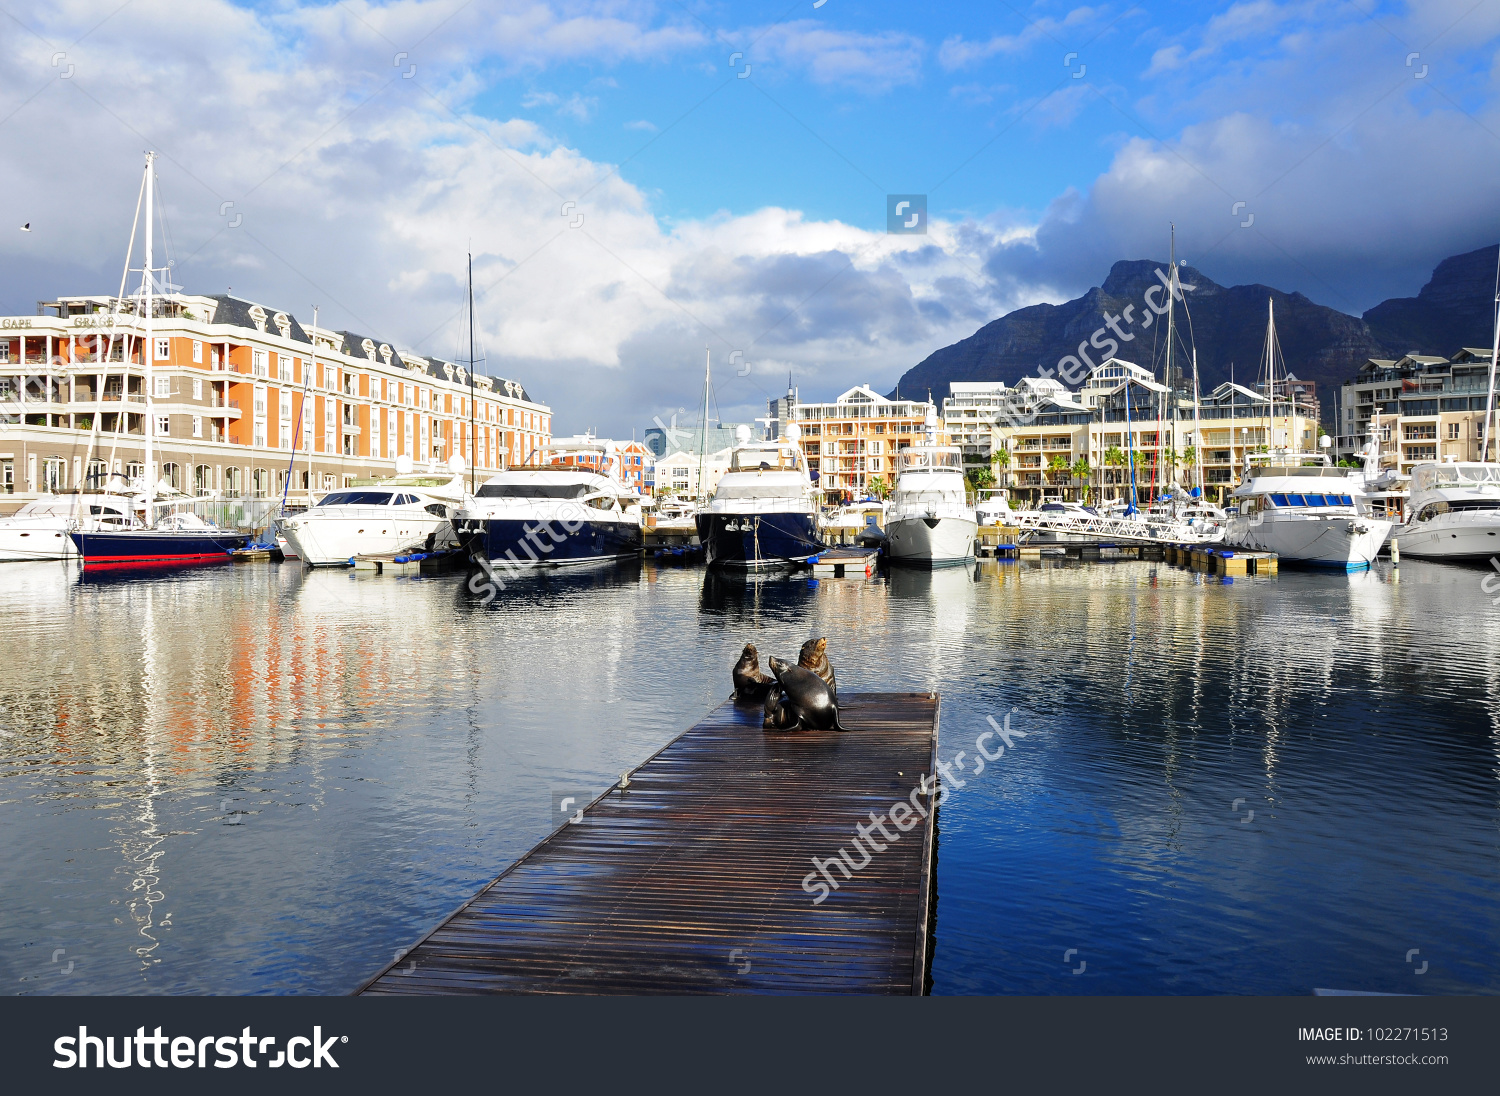 Sea Lion On A Jetty In Cape Town V&A Waterfront Stock Photo.